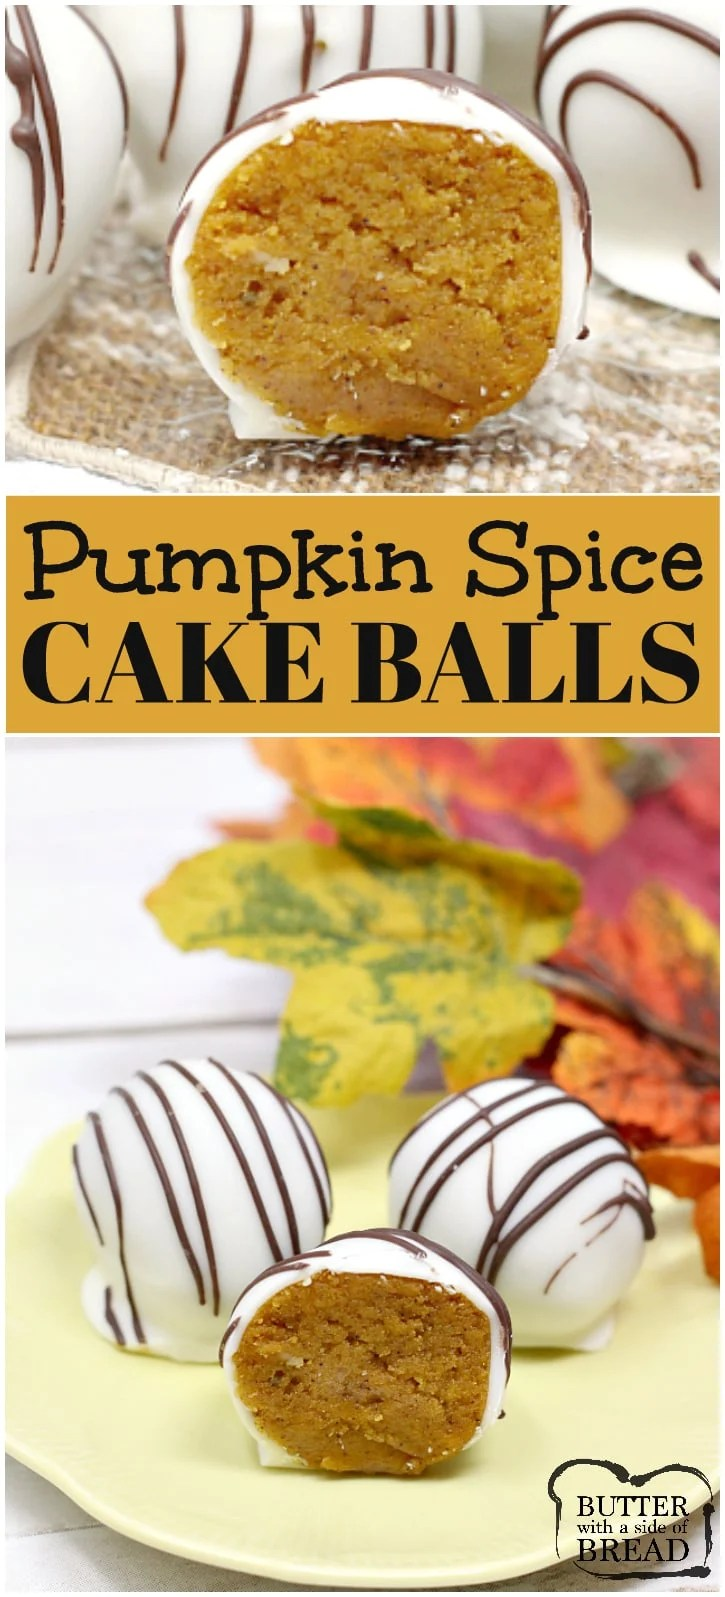 Pumpkin Spice Cake Balls are delicious little bites of pumpkin cake mixed with cream cheese frosting and then coated in white chocolate!